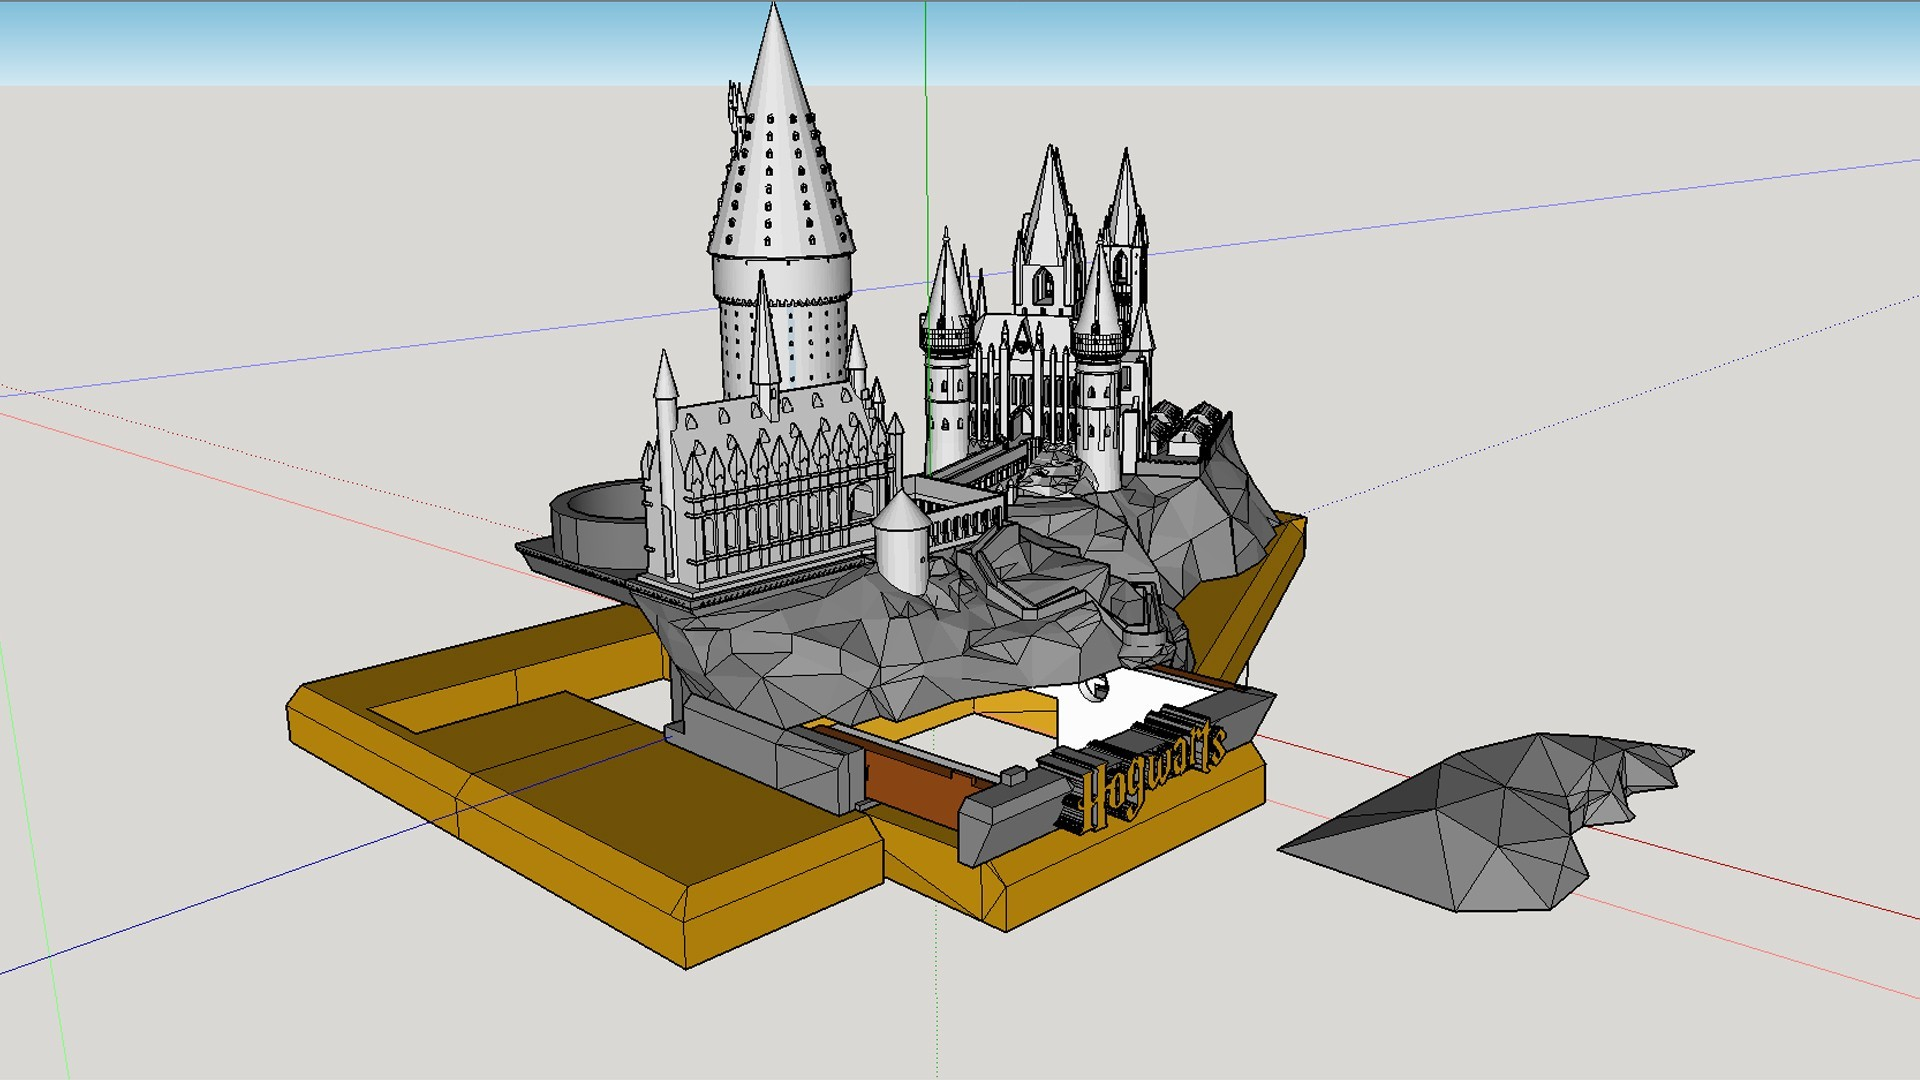 Removable rock cover.jpg Download free STL file Hogwarts School of Witchcraft • 3D printer template, Valient